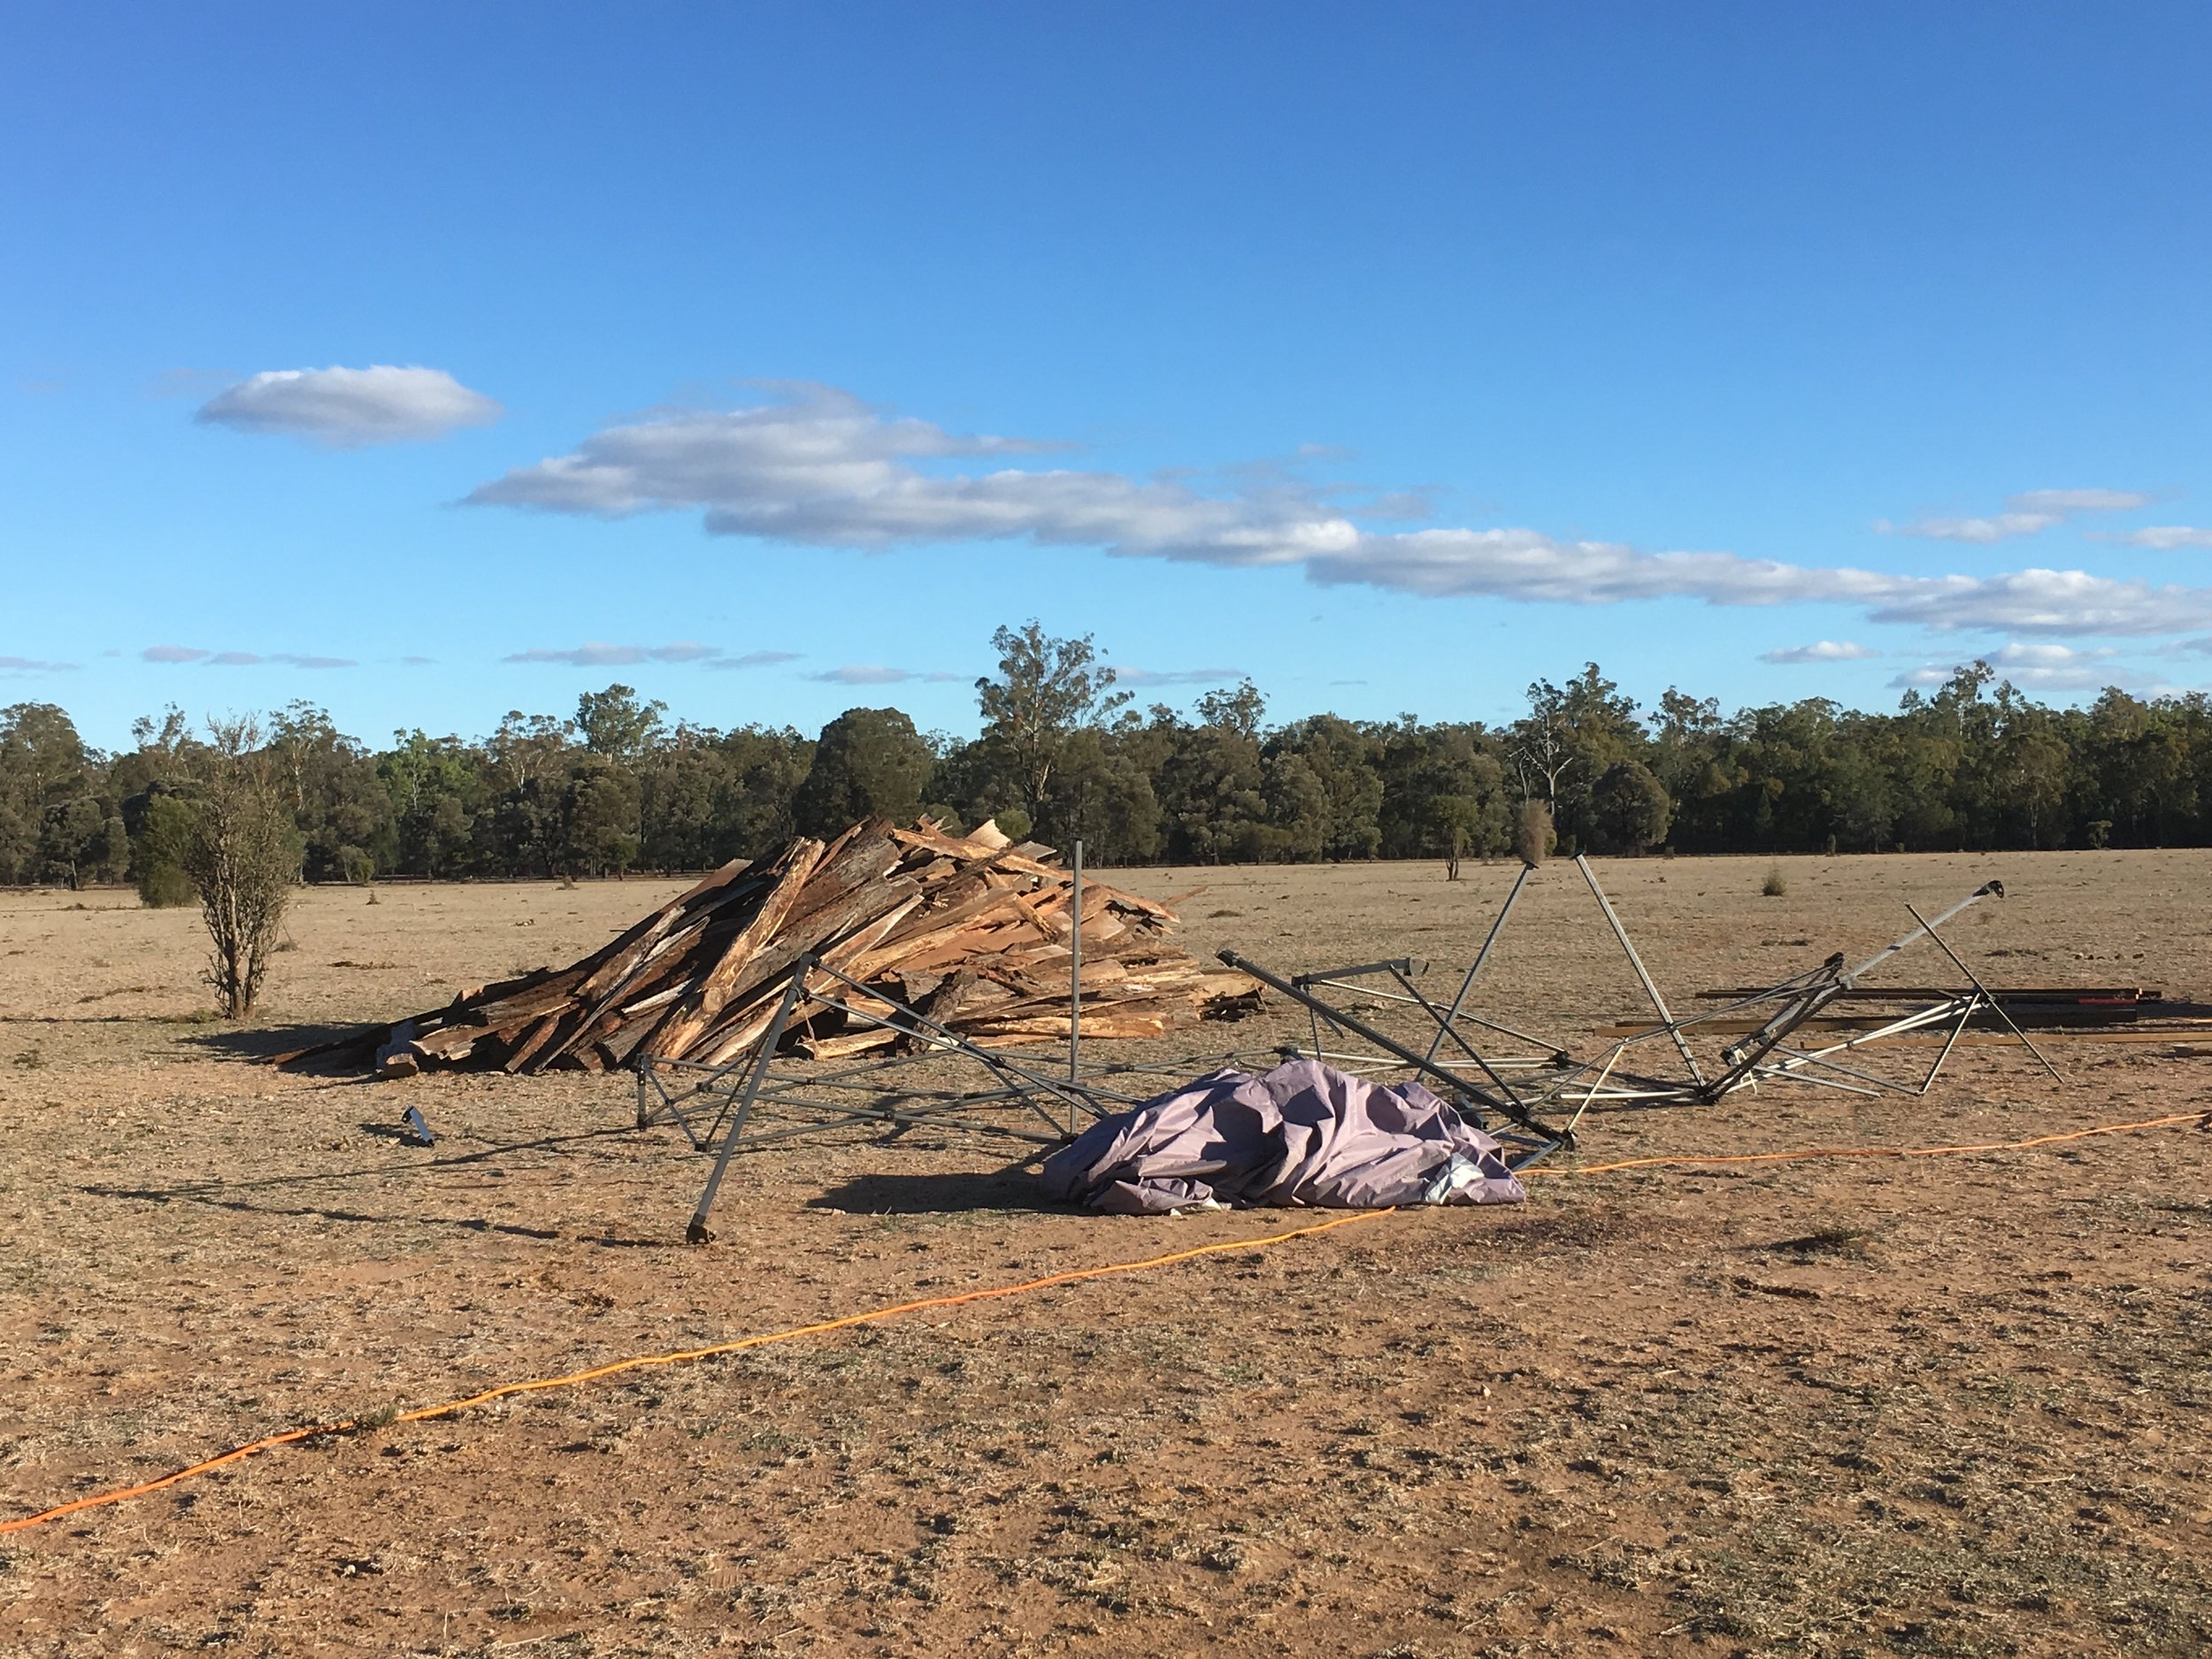 Background: The pile of flitches at the Temple site ready to be sorted. Ironbark is so-called for a reason - each length of bark is a two person lift Foreground: the mangled shade structure that succumbed to high winds the previous day, soon to be carted off to the local tip.